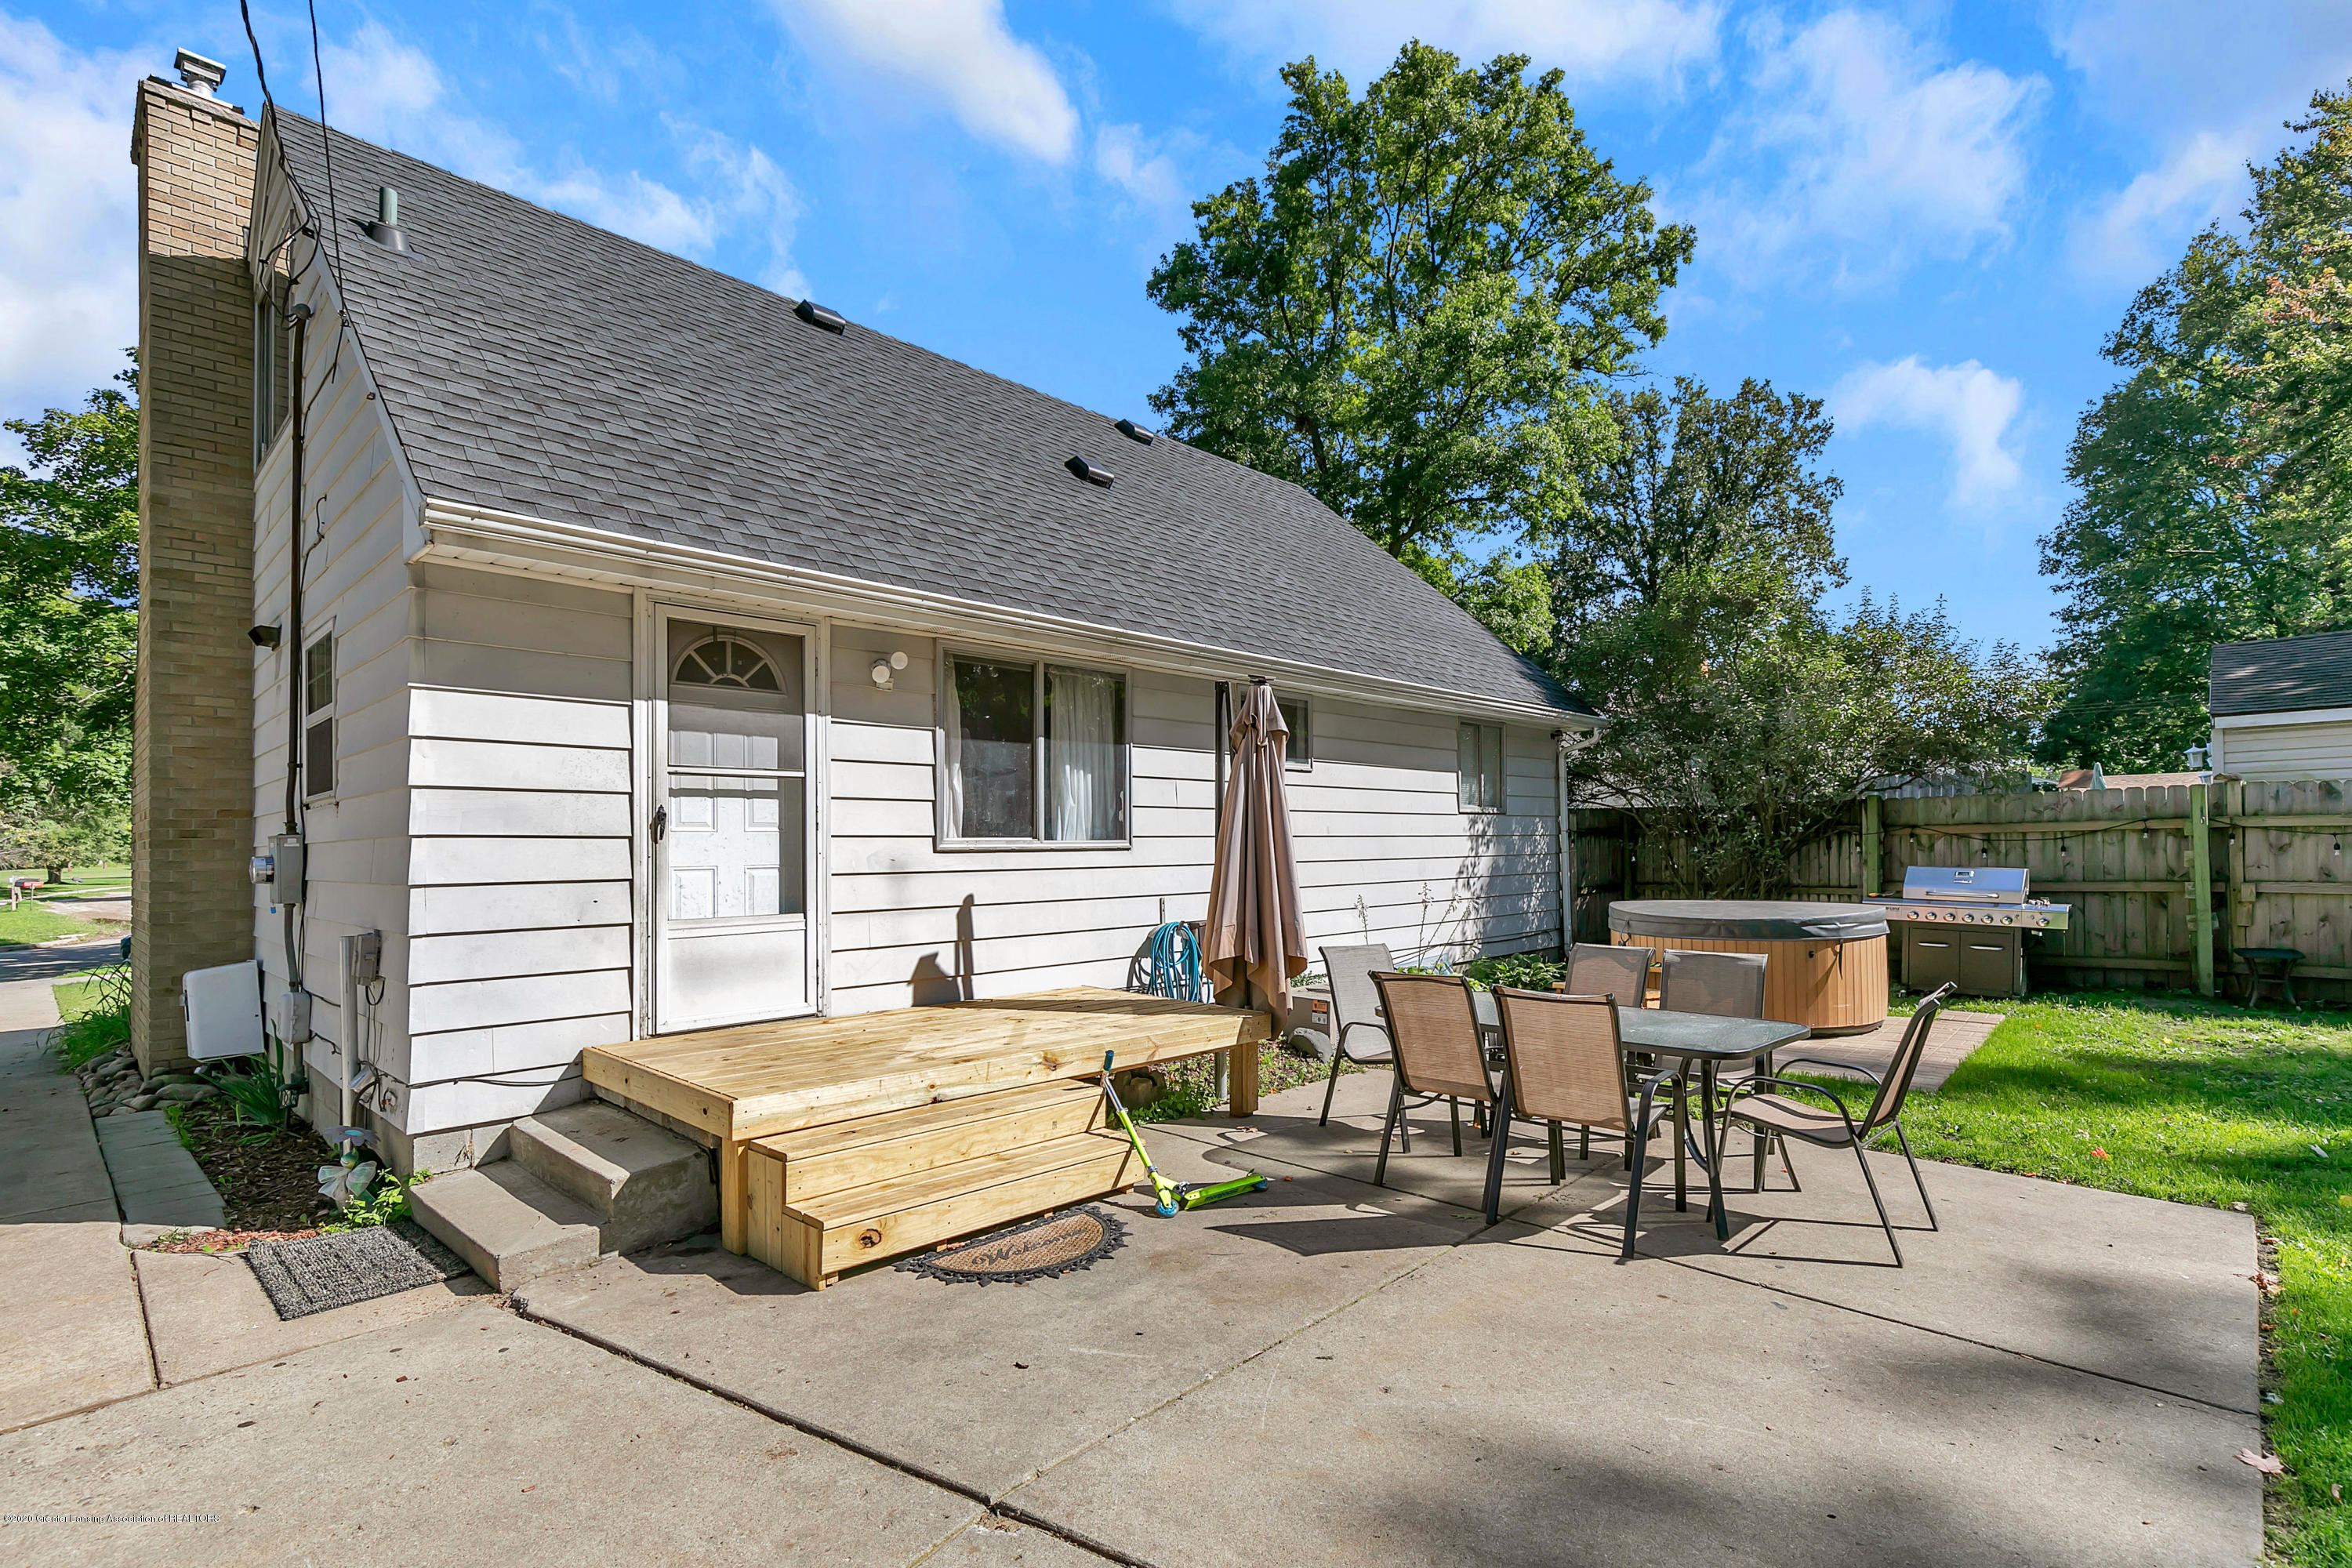 2844 S Deerfield Ave - 9I3A2603 - 26